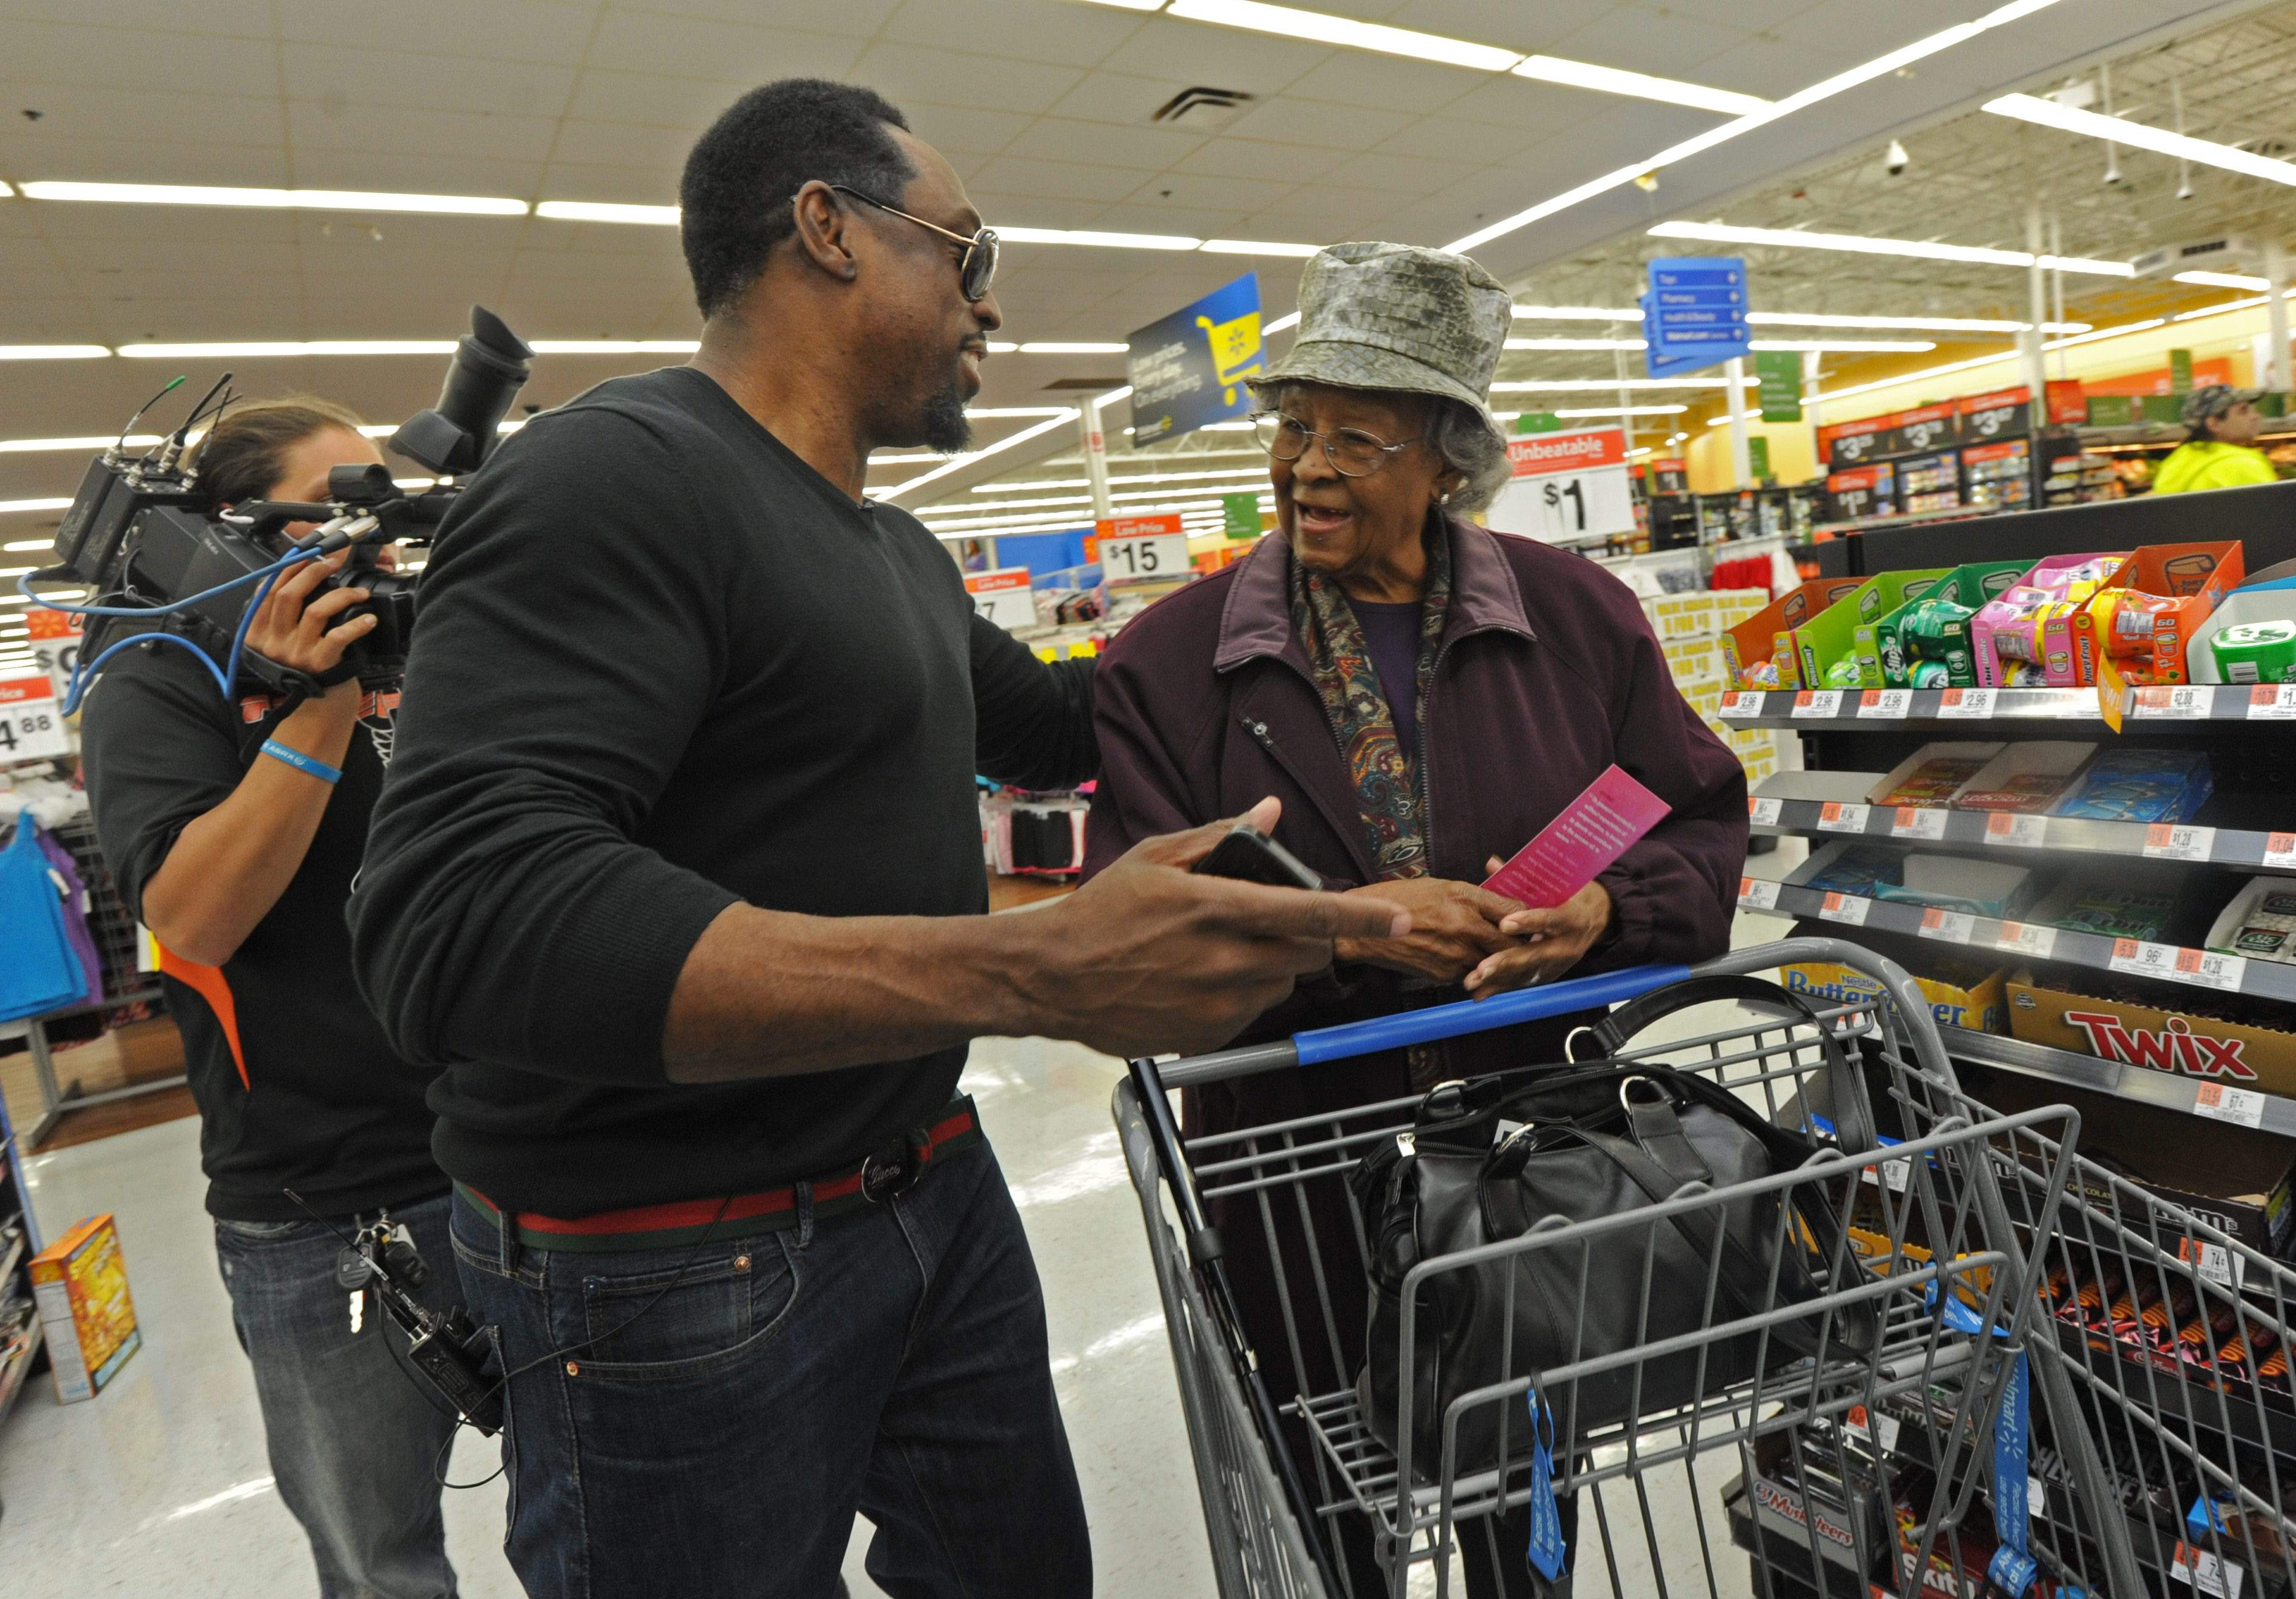 Keven Parker, whose Spread the Love Foundation helps others, surprises Geneva Dawson at a Wal-Mart with the news that he'll be paying for what's in her shopping cart.   APRIL SAUL / Staff Photographer